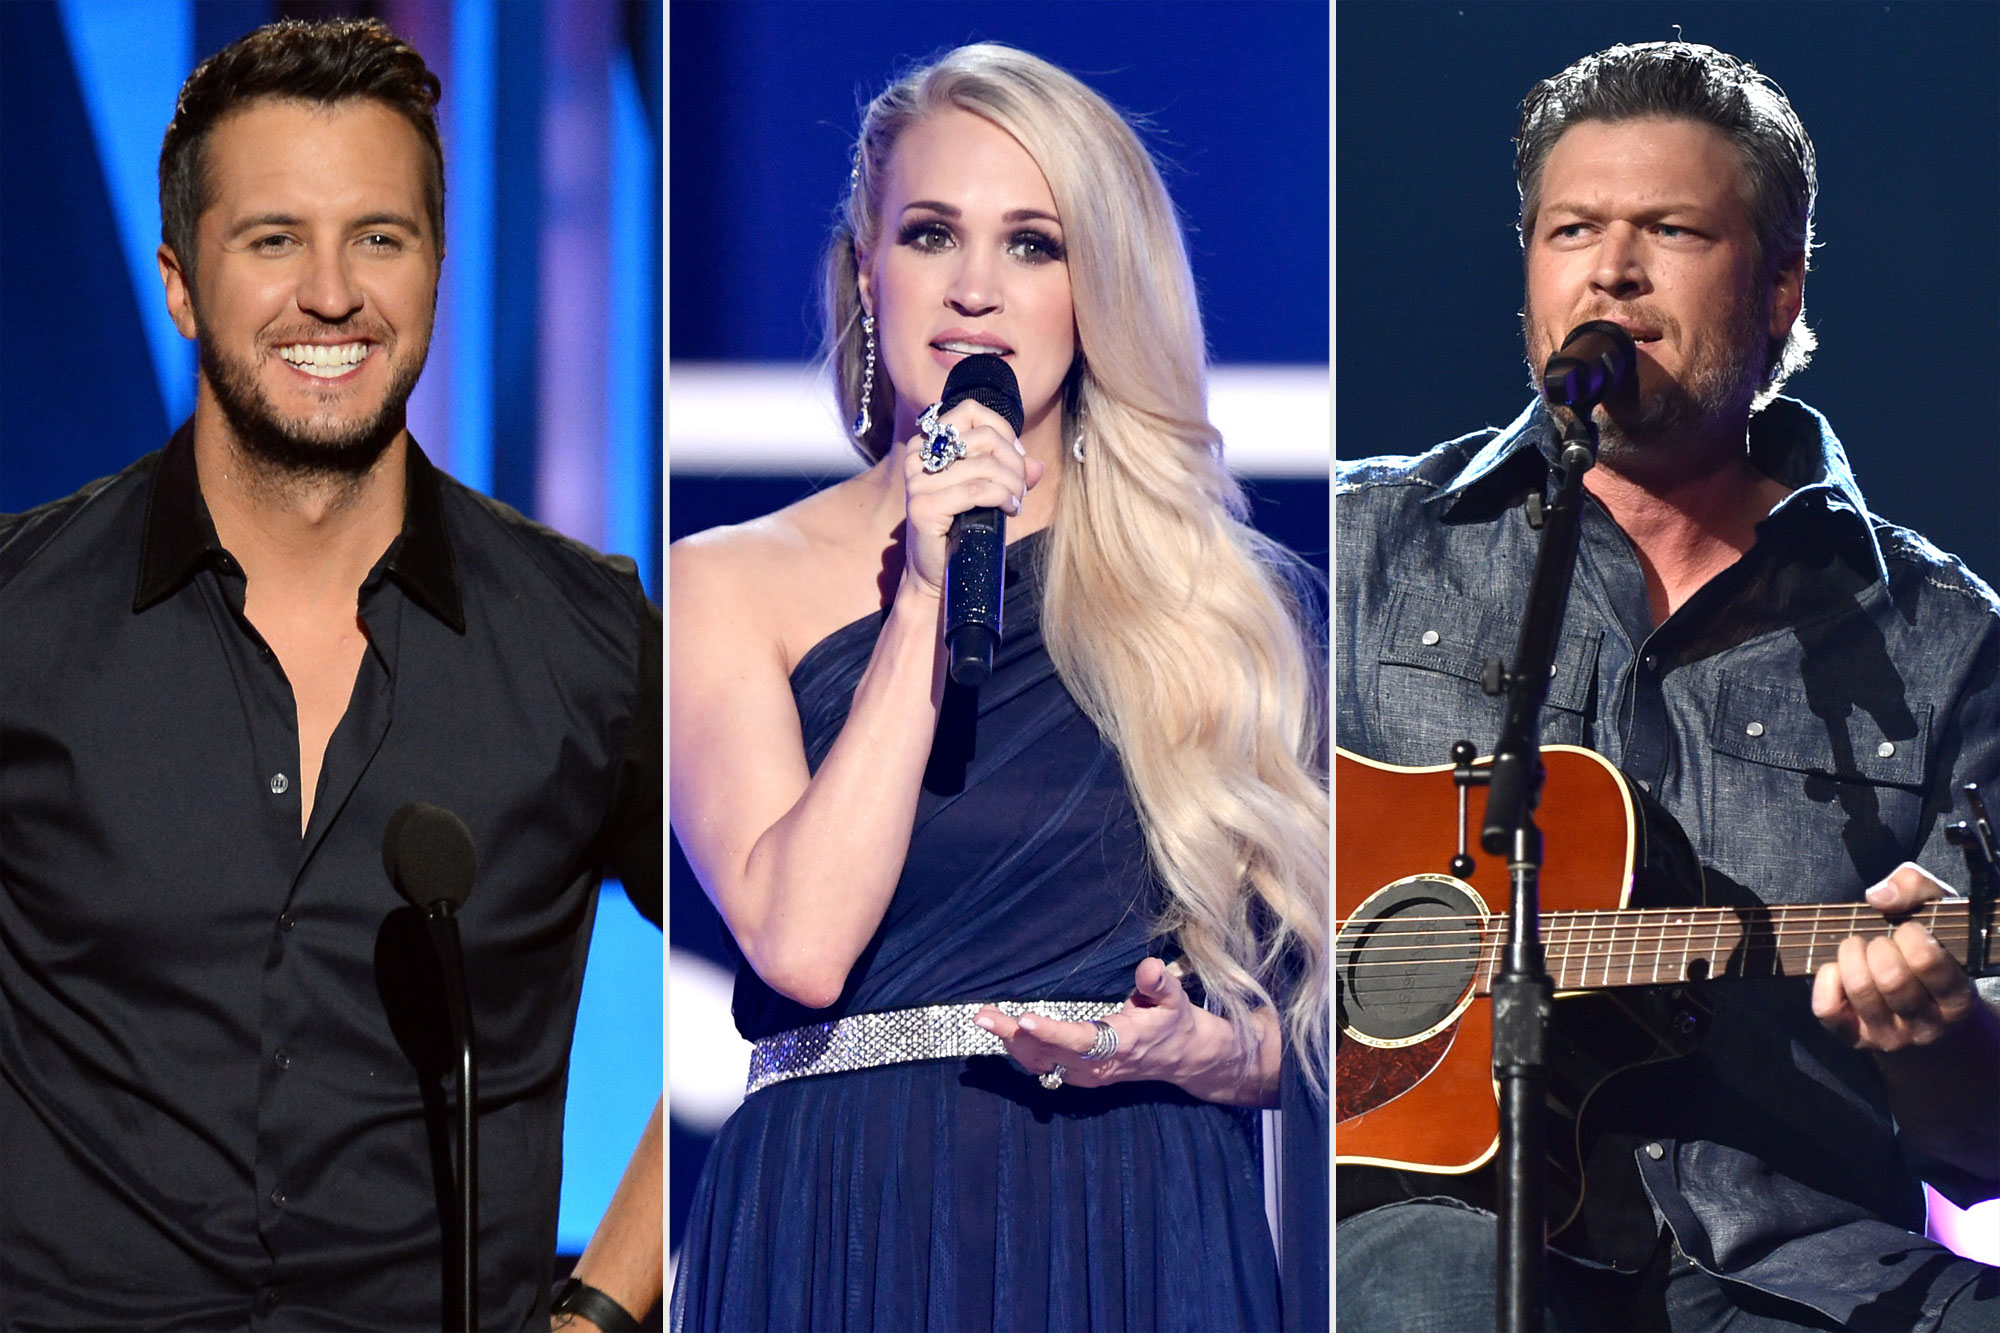 Luke Bryan, Carrie Underwood, Blake Shelton ACM replacement concert